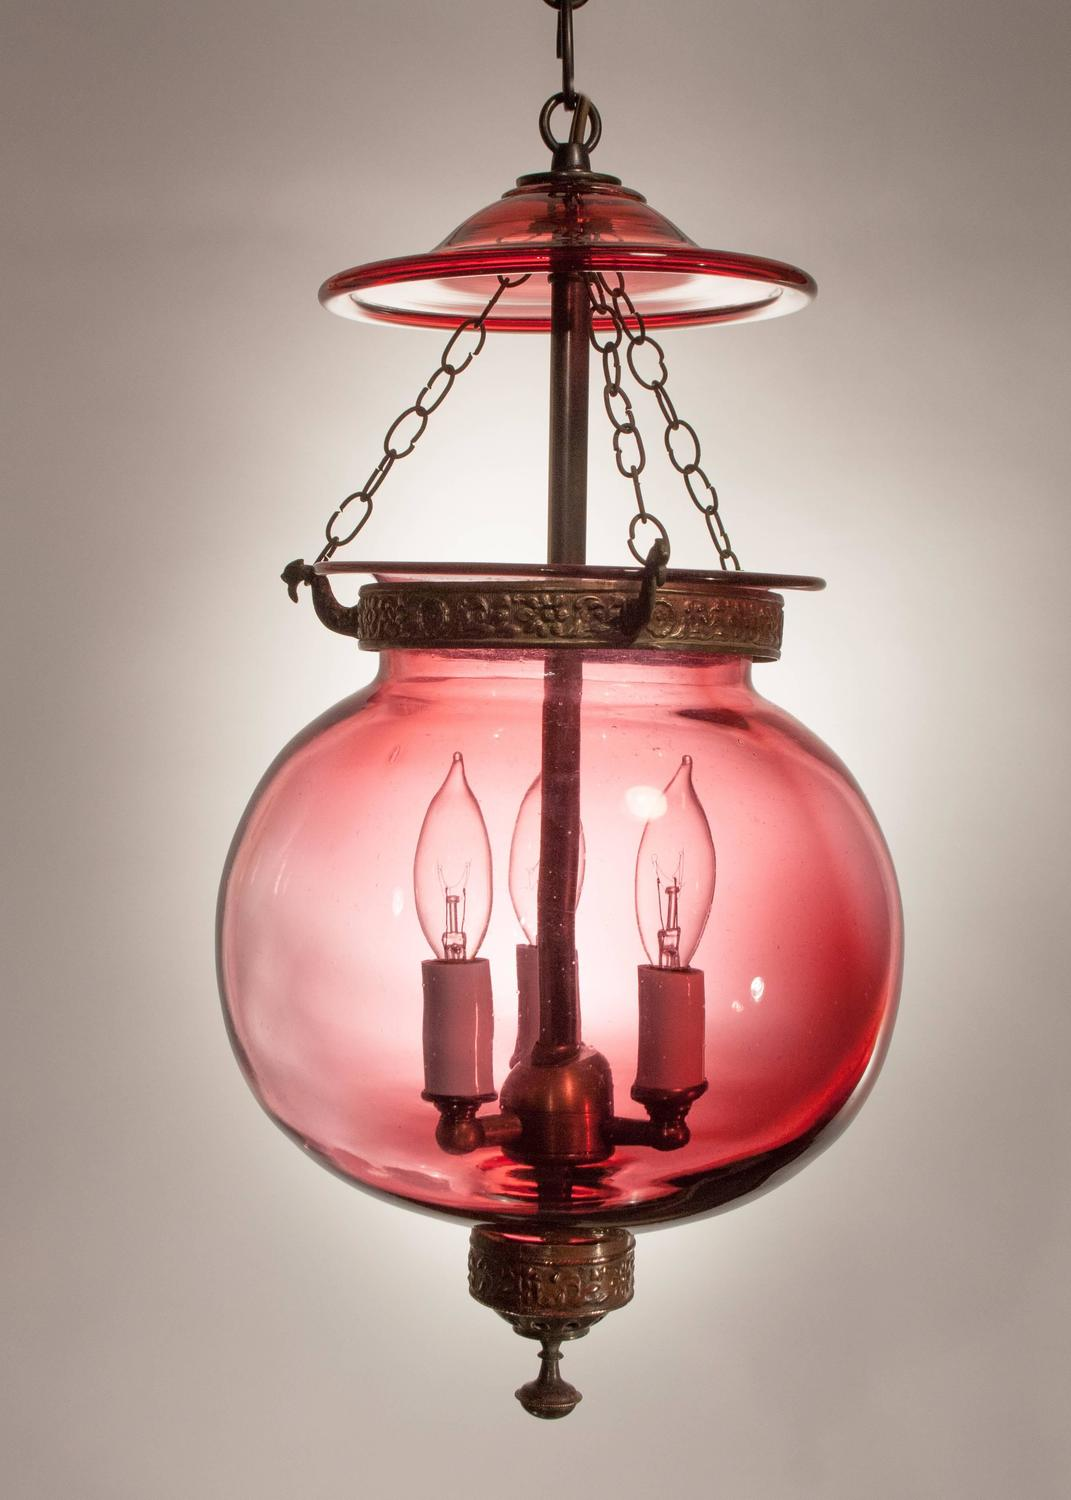 19th Century Red Globe Bell Jar Lantern For Sale At 1stdibs